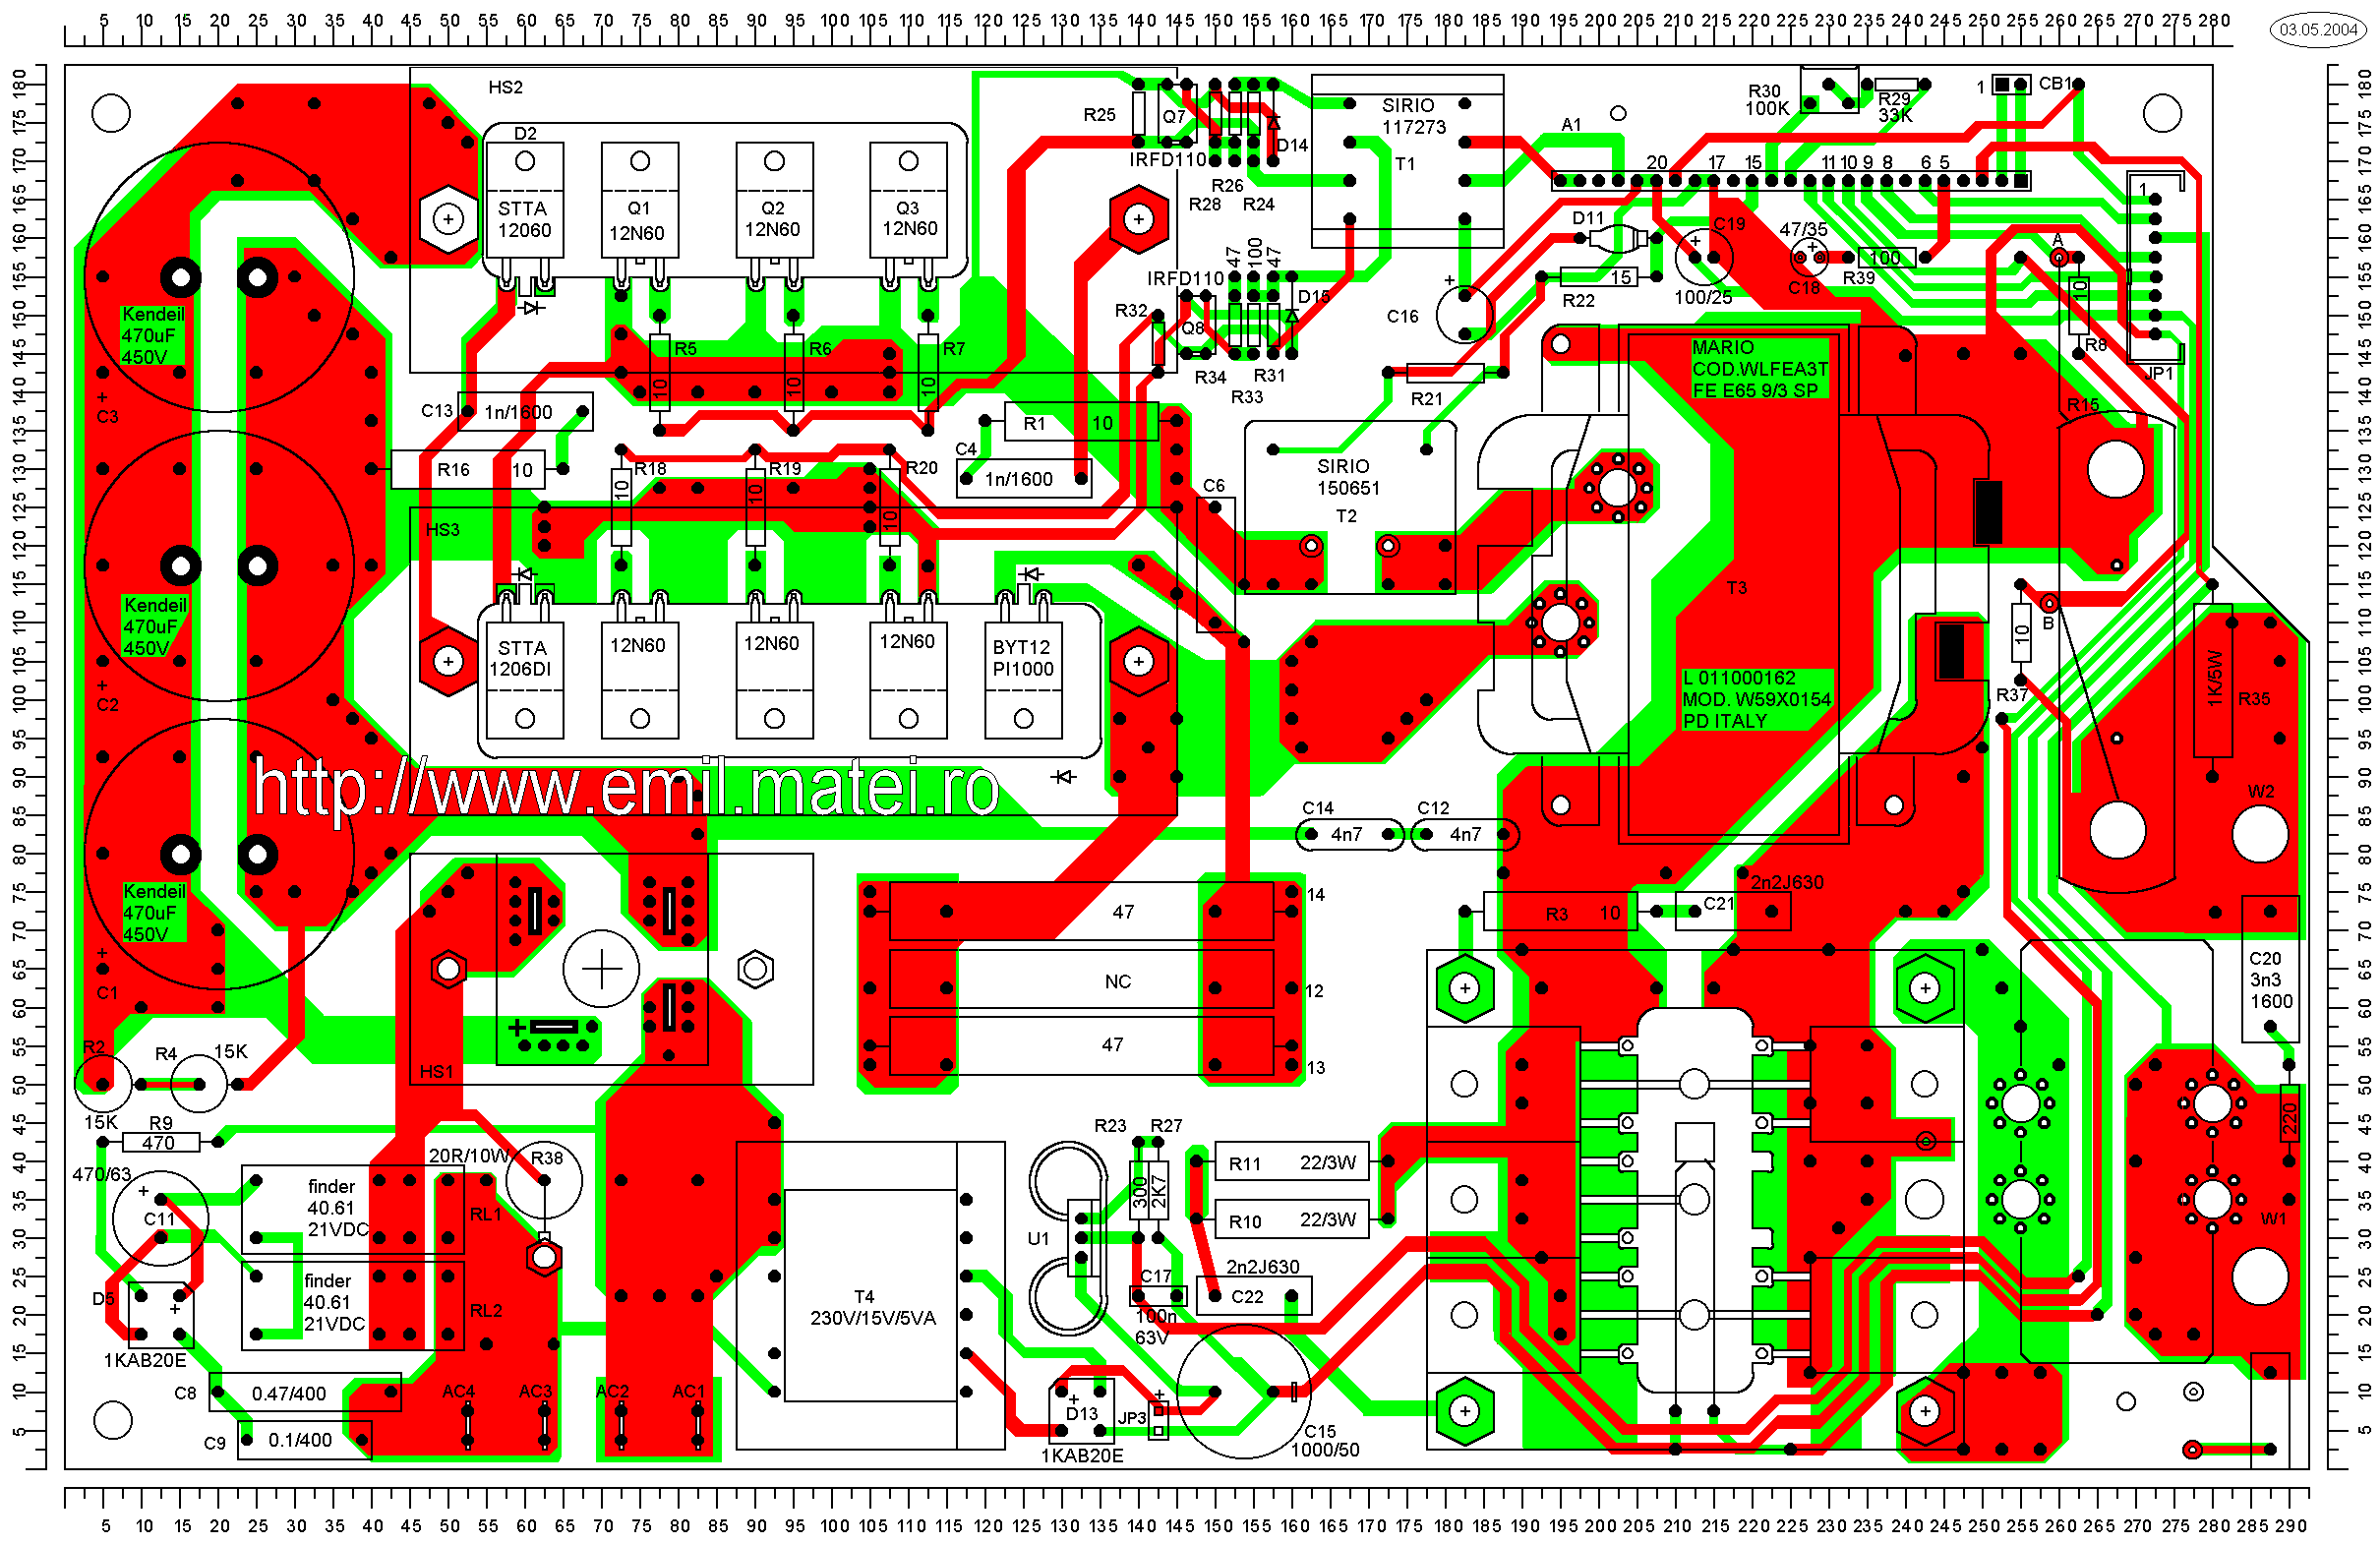 LINCOLN INVERTEC V140-S - PCB Routing layers